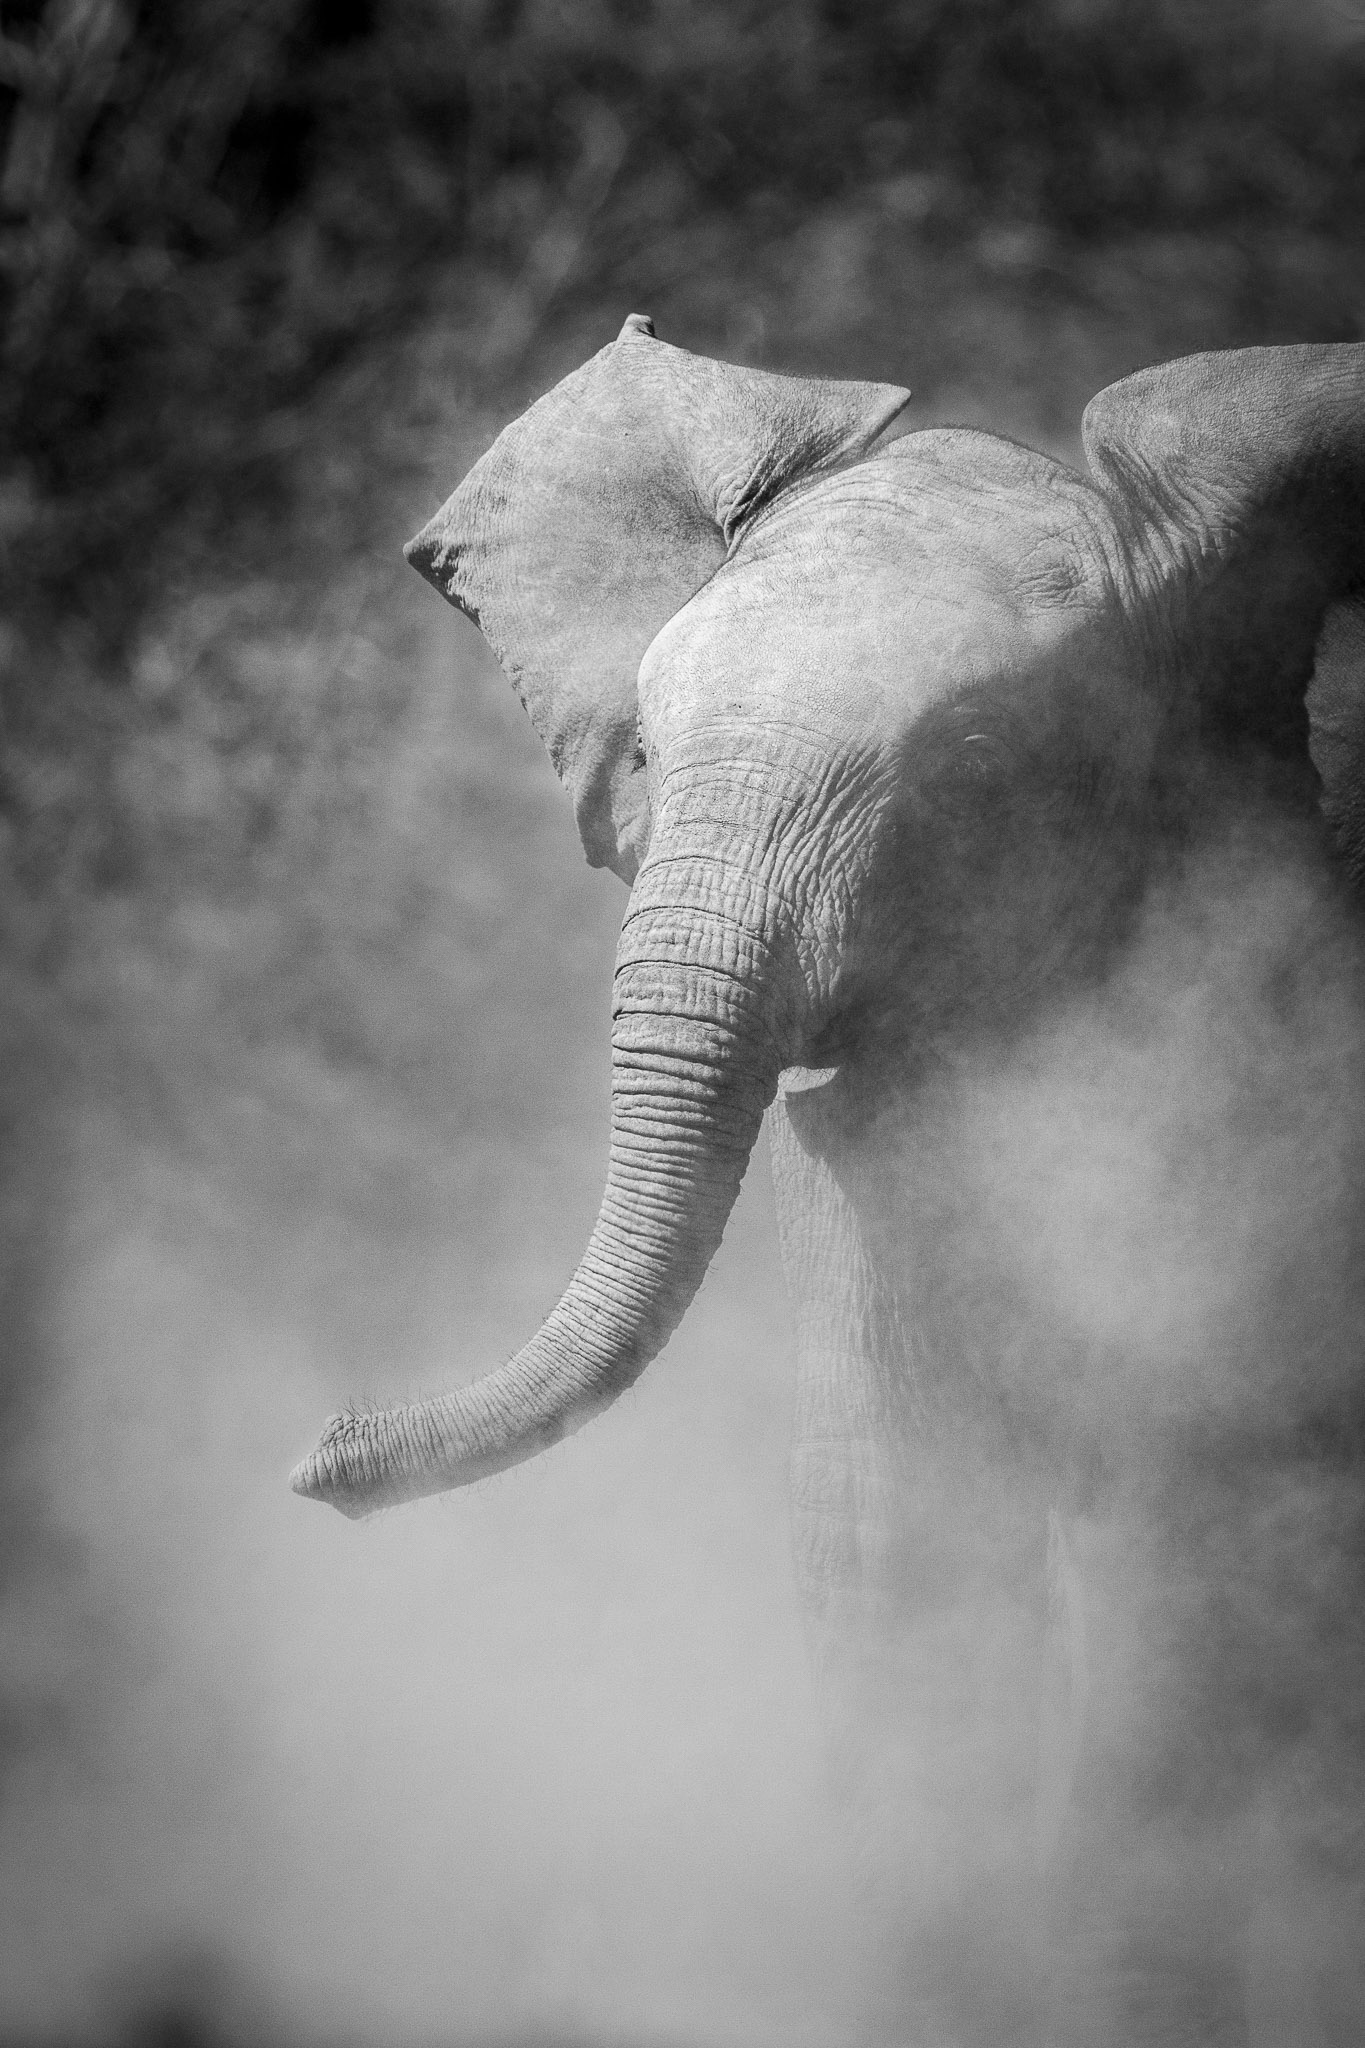 An elephant calf with lots of dust in black and white